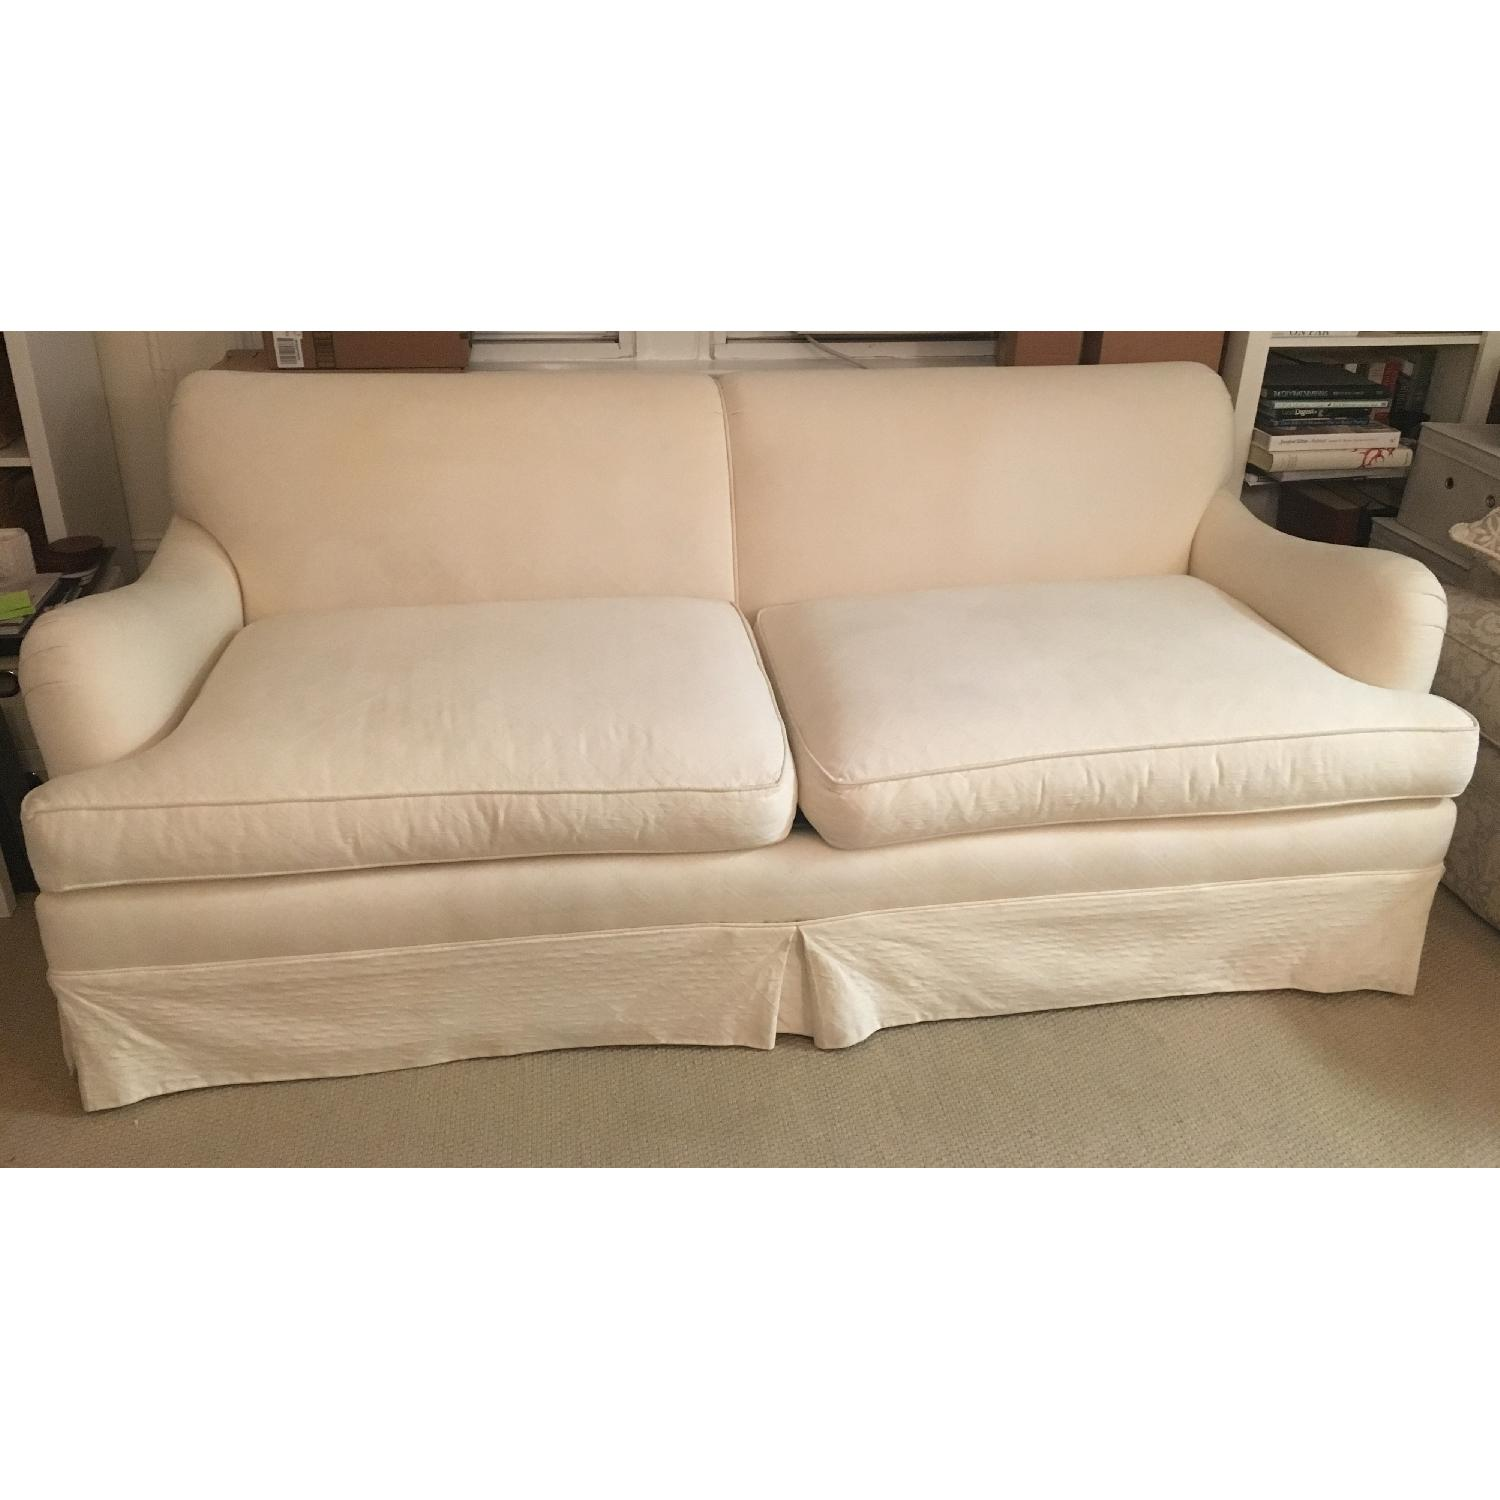 ABC Carpet And Home 2 Seater English Roll Arm Sofa